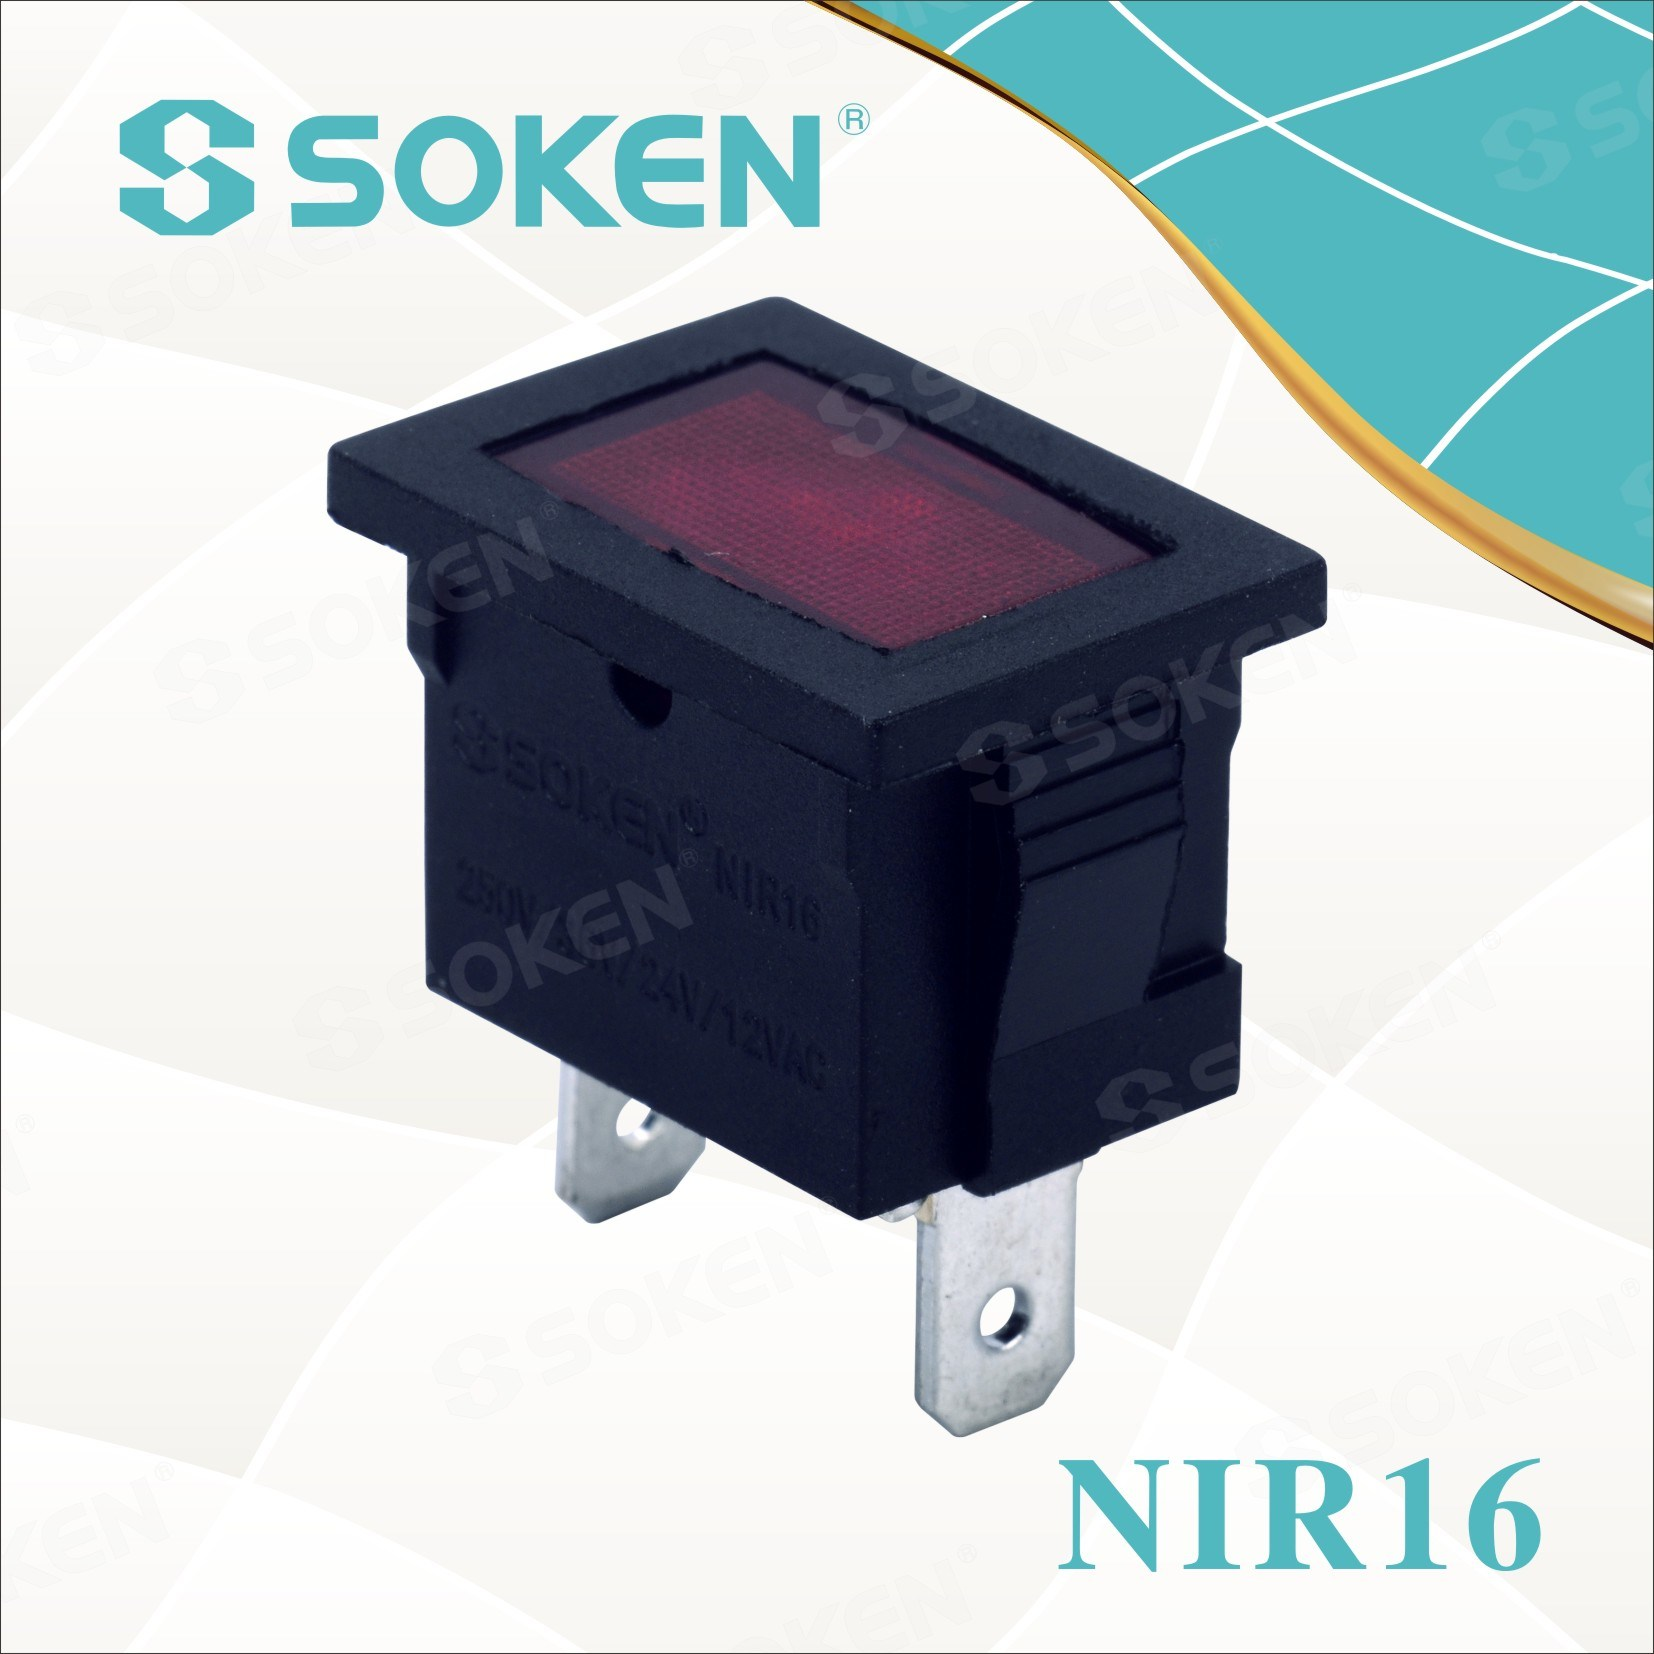 Nir16 12V/24V Miniature Indicator Light with Rice Bulb 21*15mm